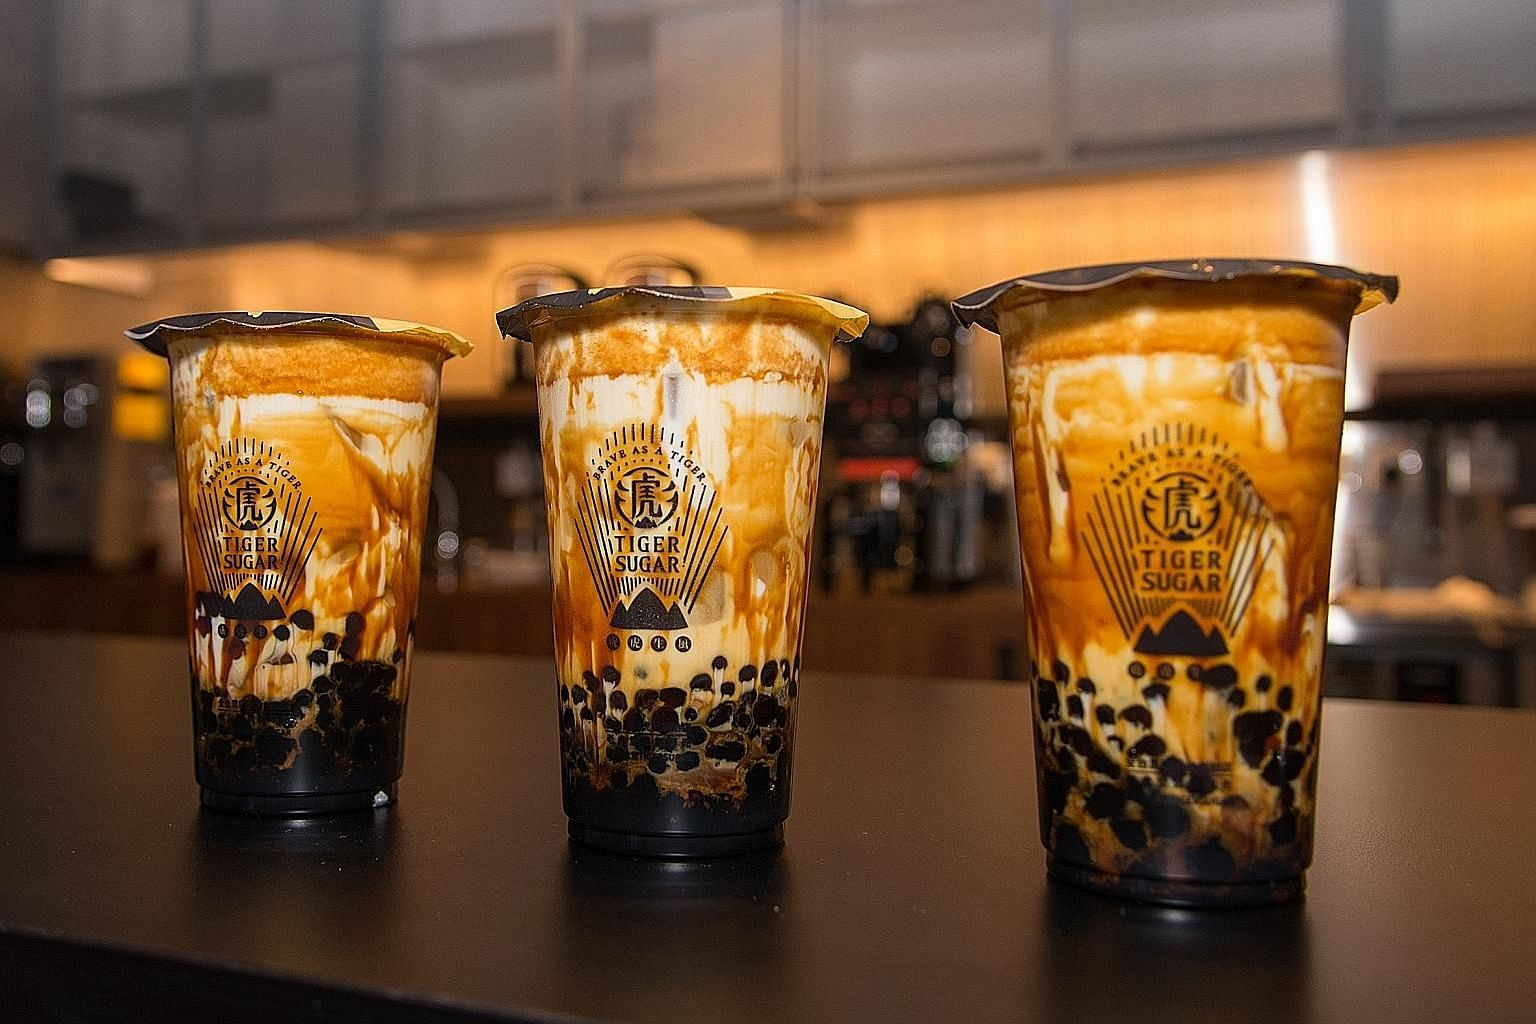 Bubble tea brand Tiger Sugar's signature drink is the brown sugar boba fresh milk with cream mousse.